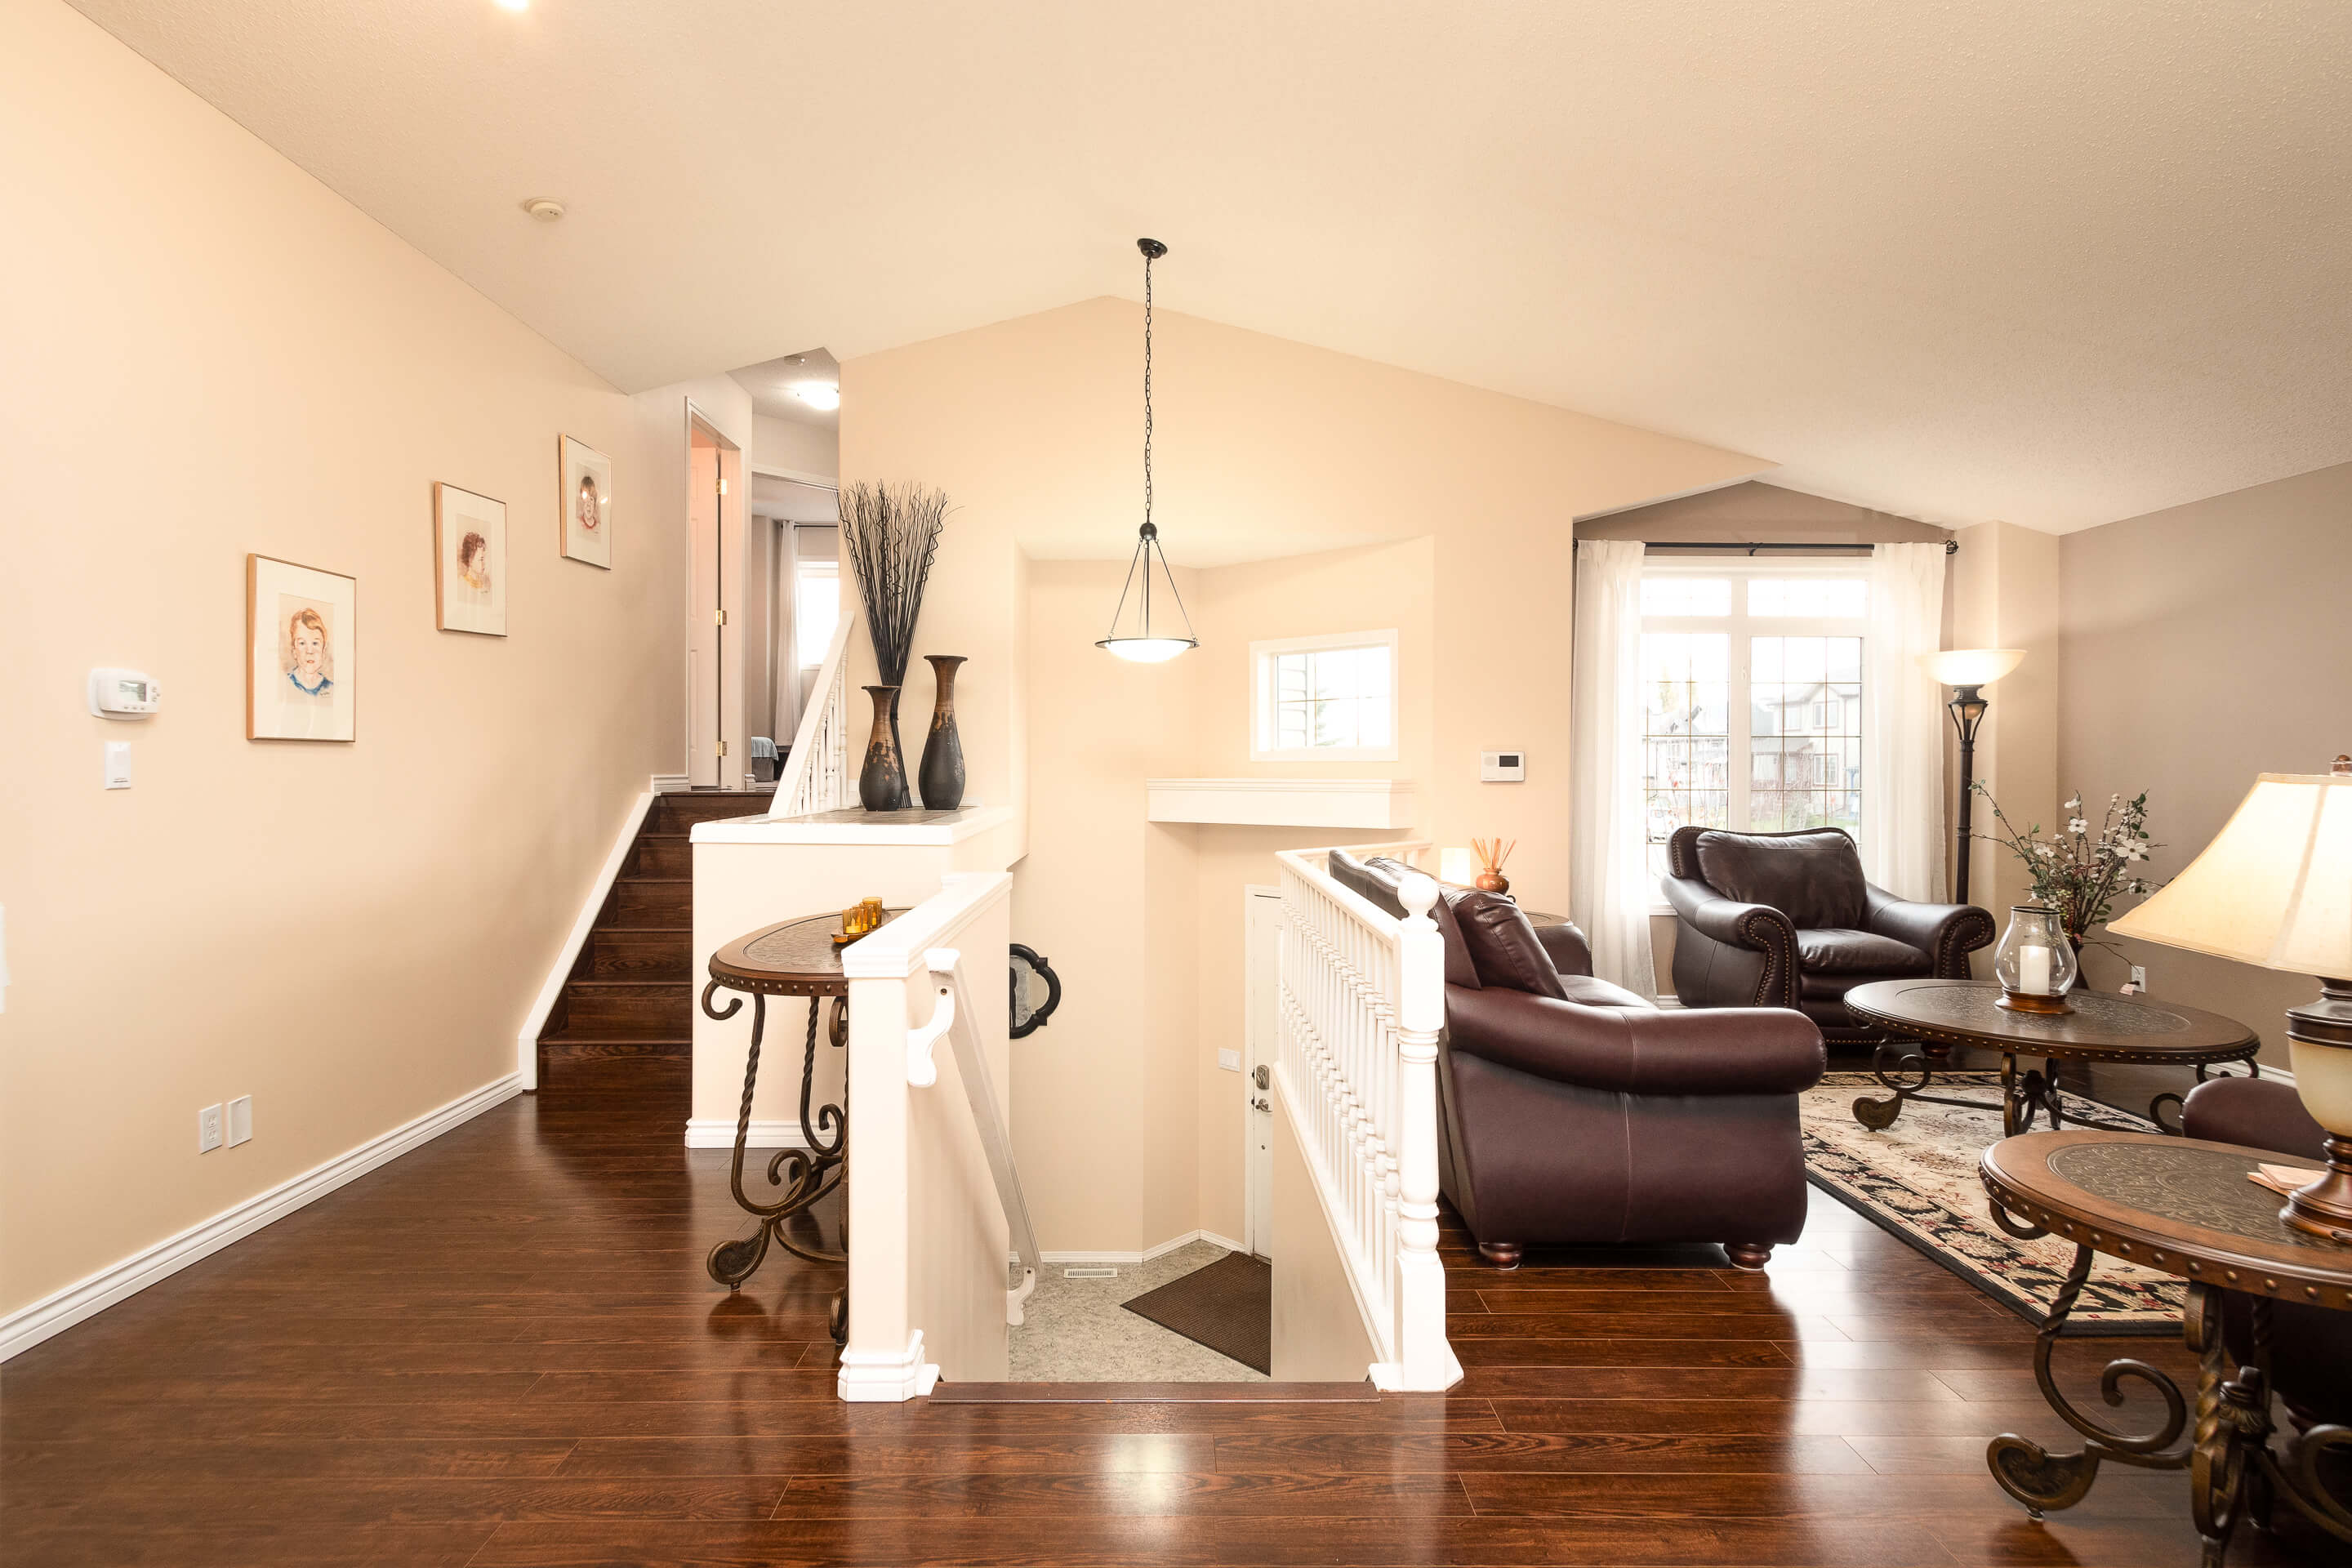 Hello Gorgeous - 225 Stonegate Crescent NW Airdrie - Tara Molina Real Estate (22 of 37)